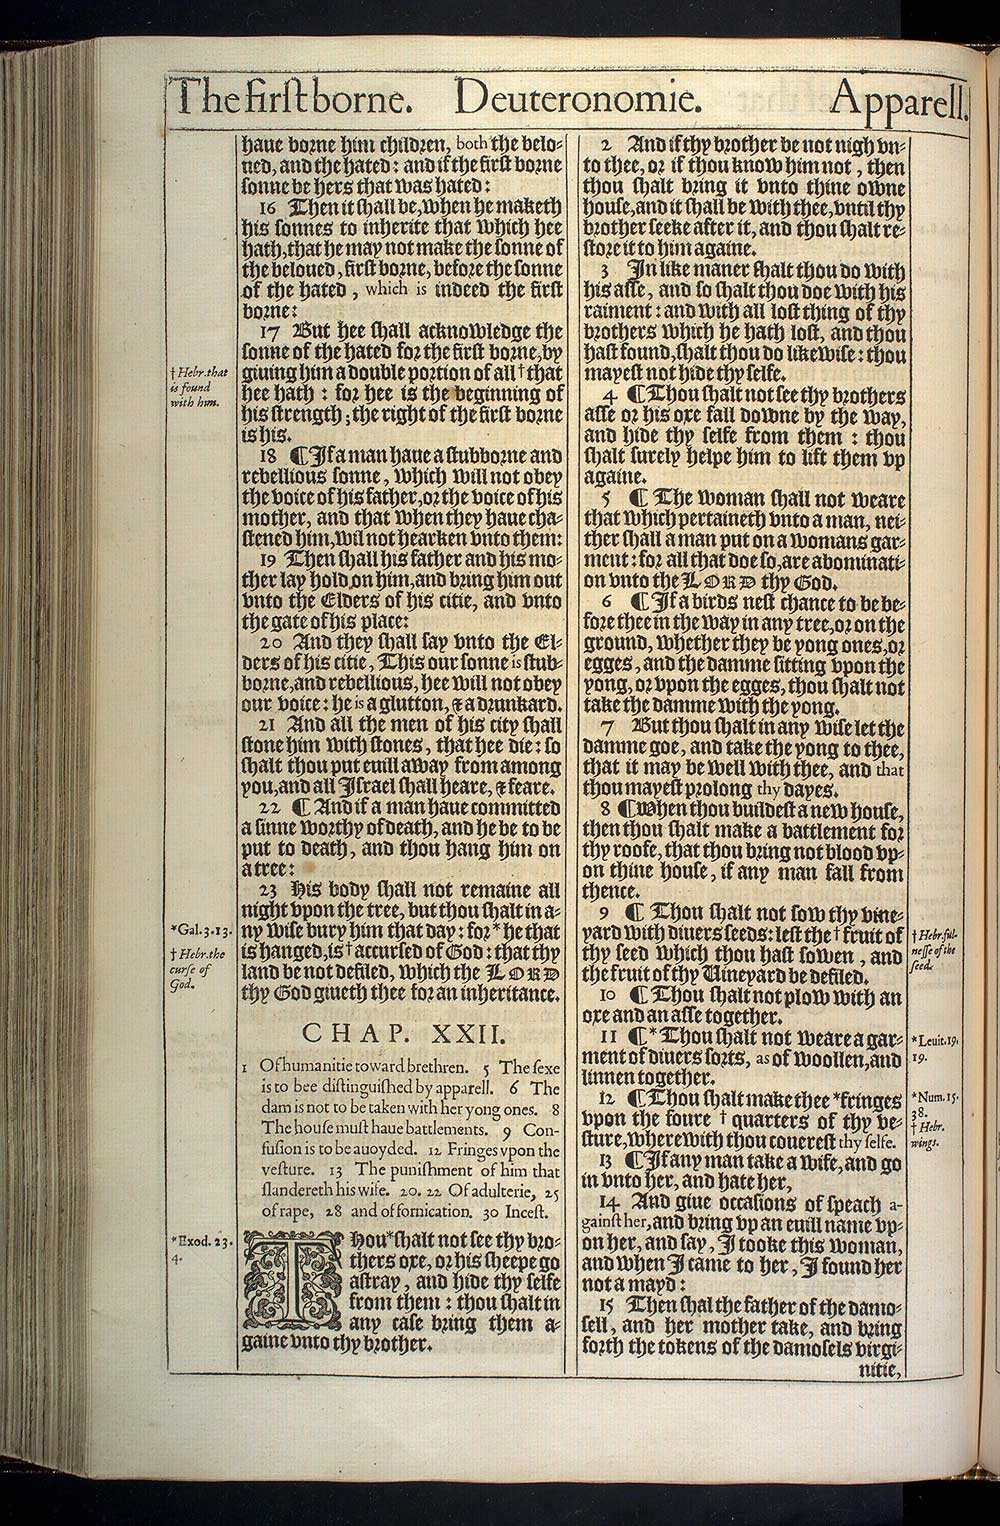 Deuteronomy Chapter 22 Original 1611 Bible Scan